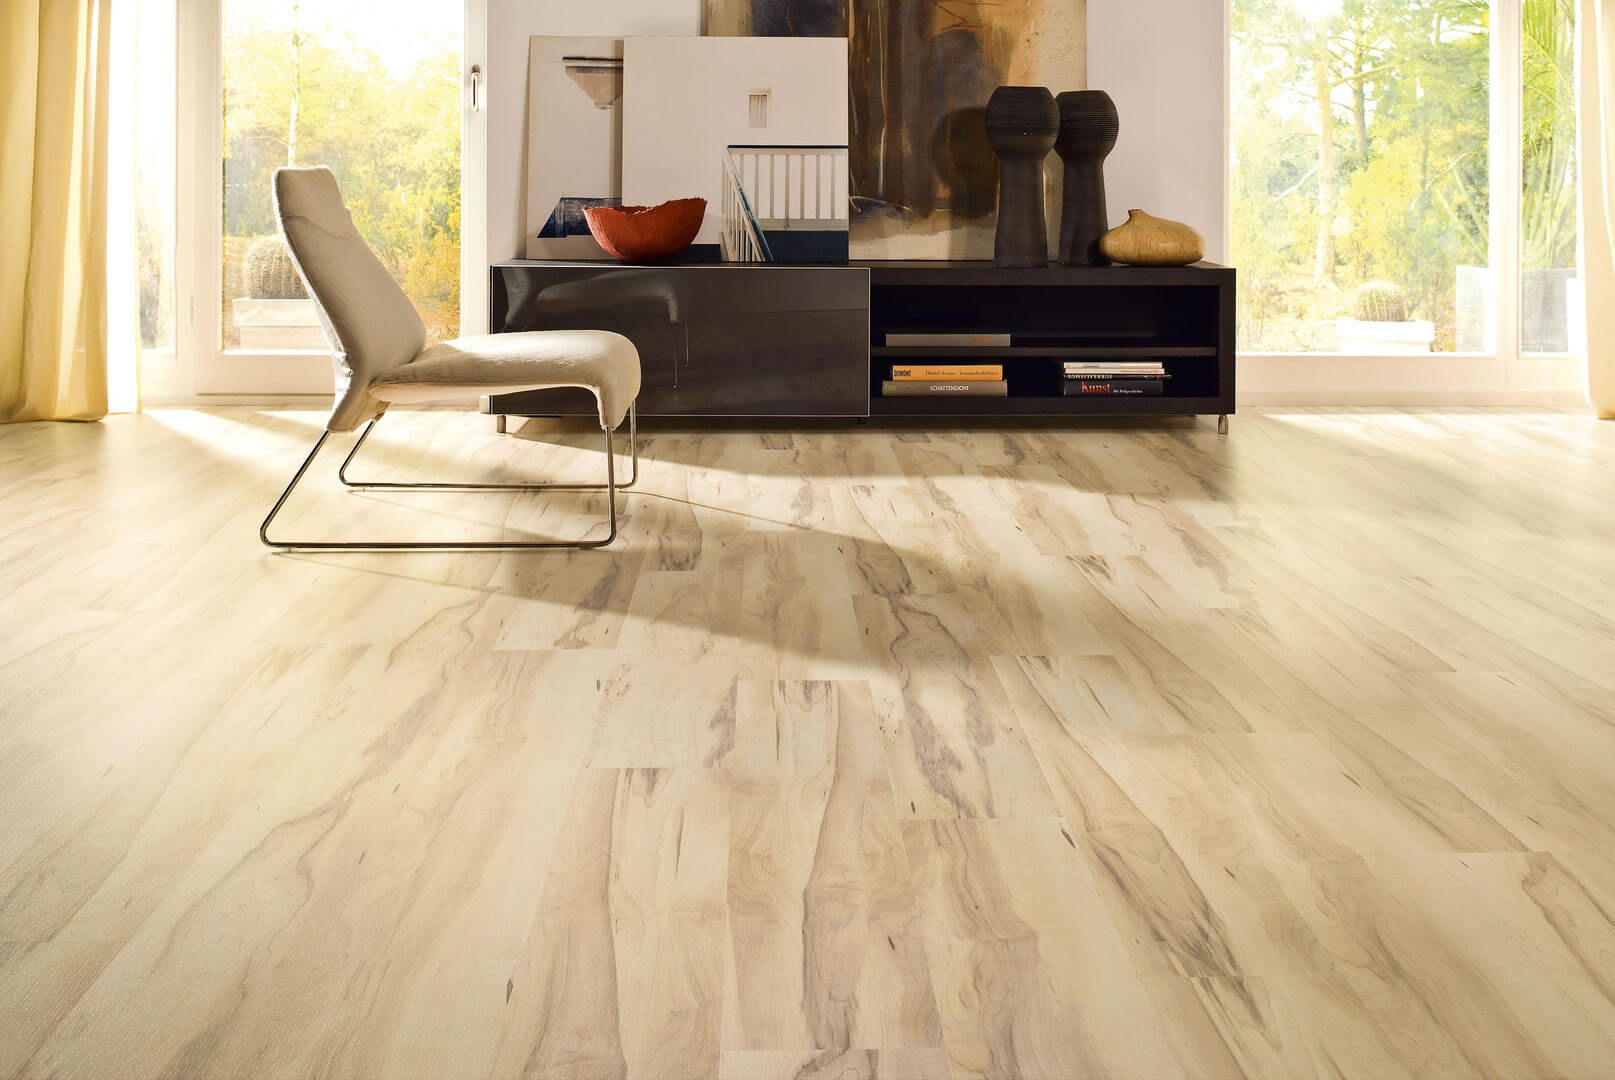 Laminate Floor Finishing Types, Description, Properties. Light colored material used in the modern interior of the living